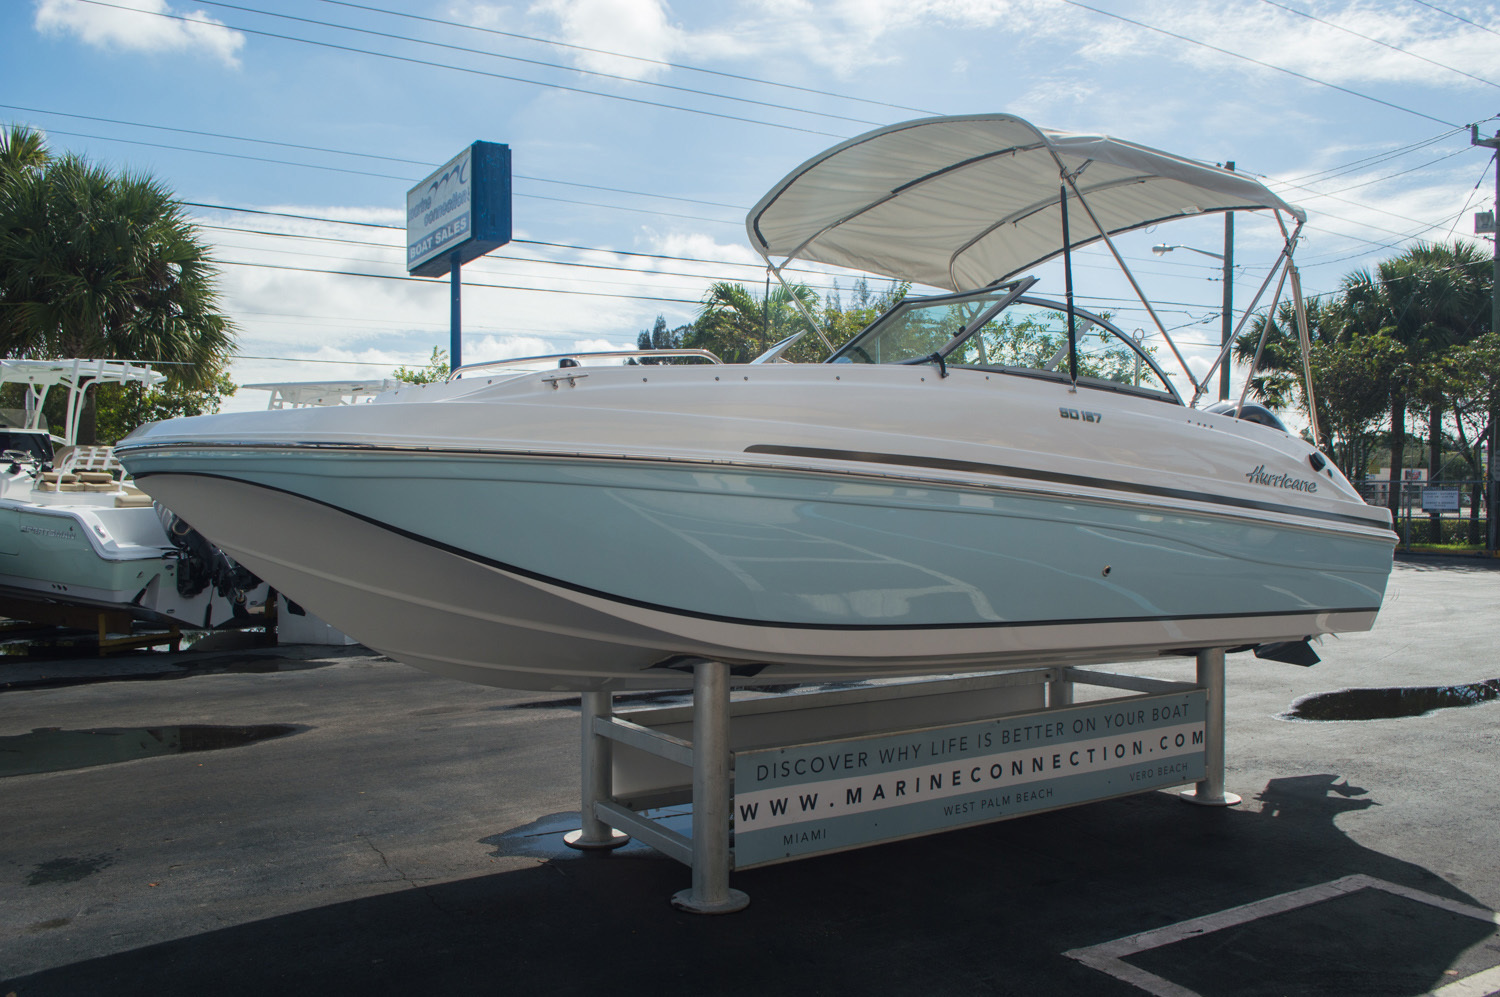 Thumbnail 3 for New 2016 Hurricane SunDeck SD 187 OB boat for sale in West Palm Beach, FL